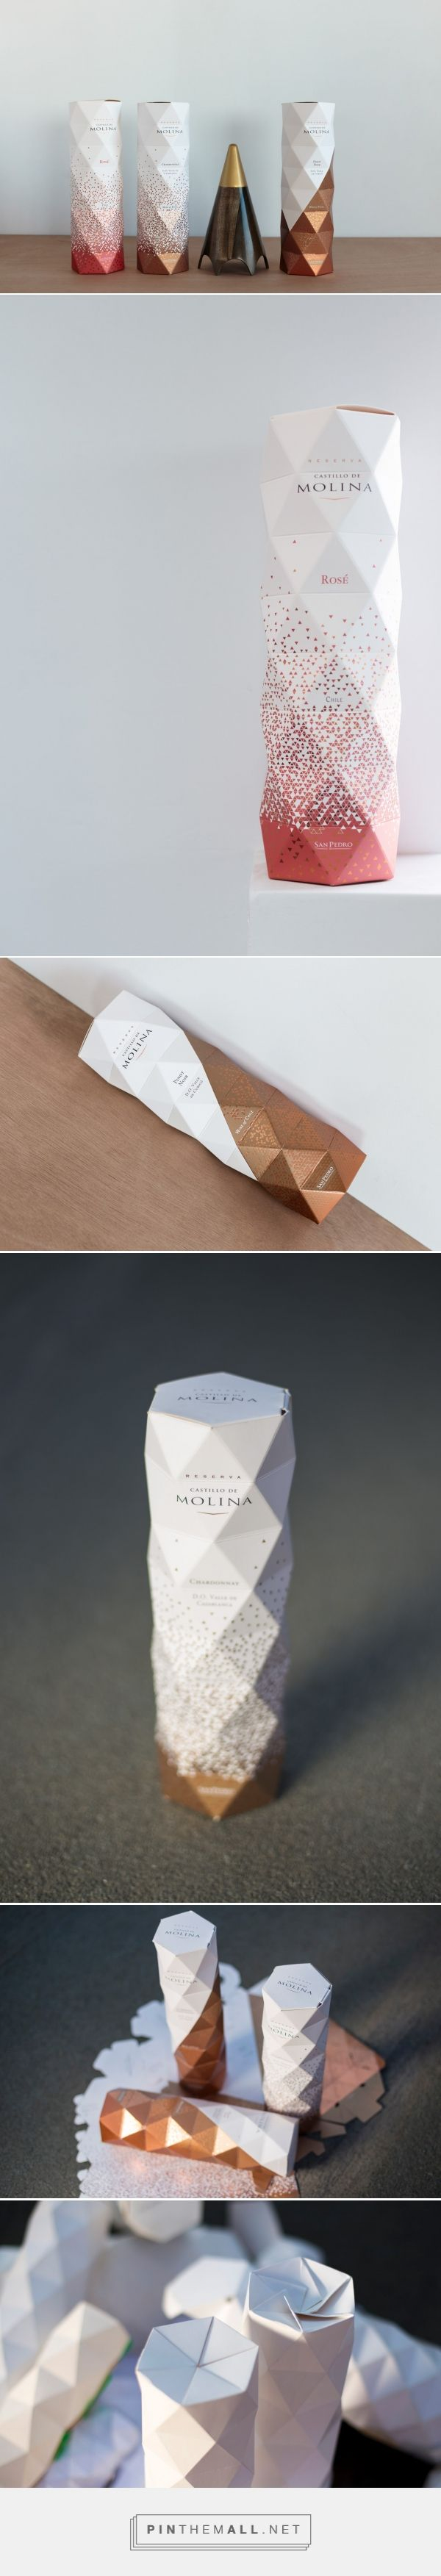 Castillo De Molina Origami Packaging Design By Non